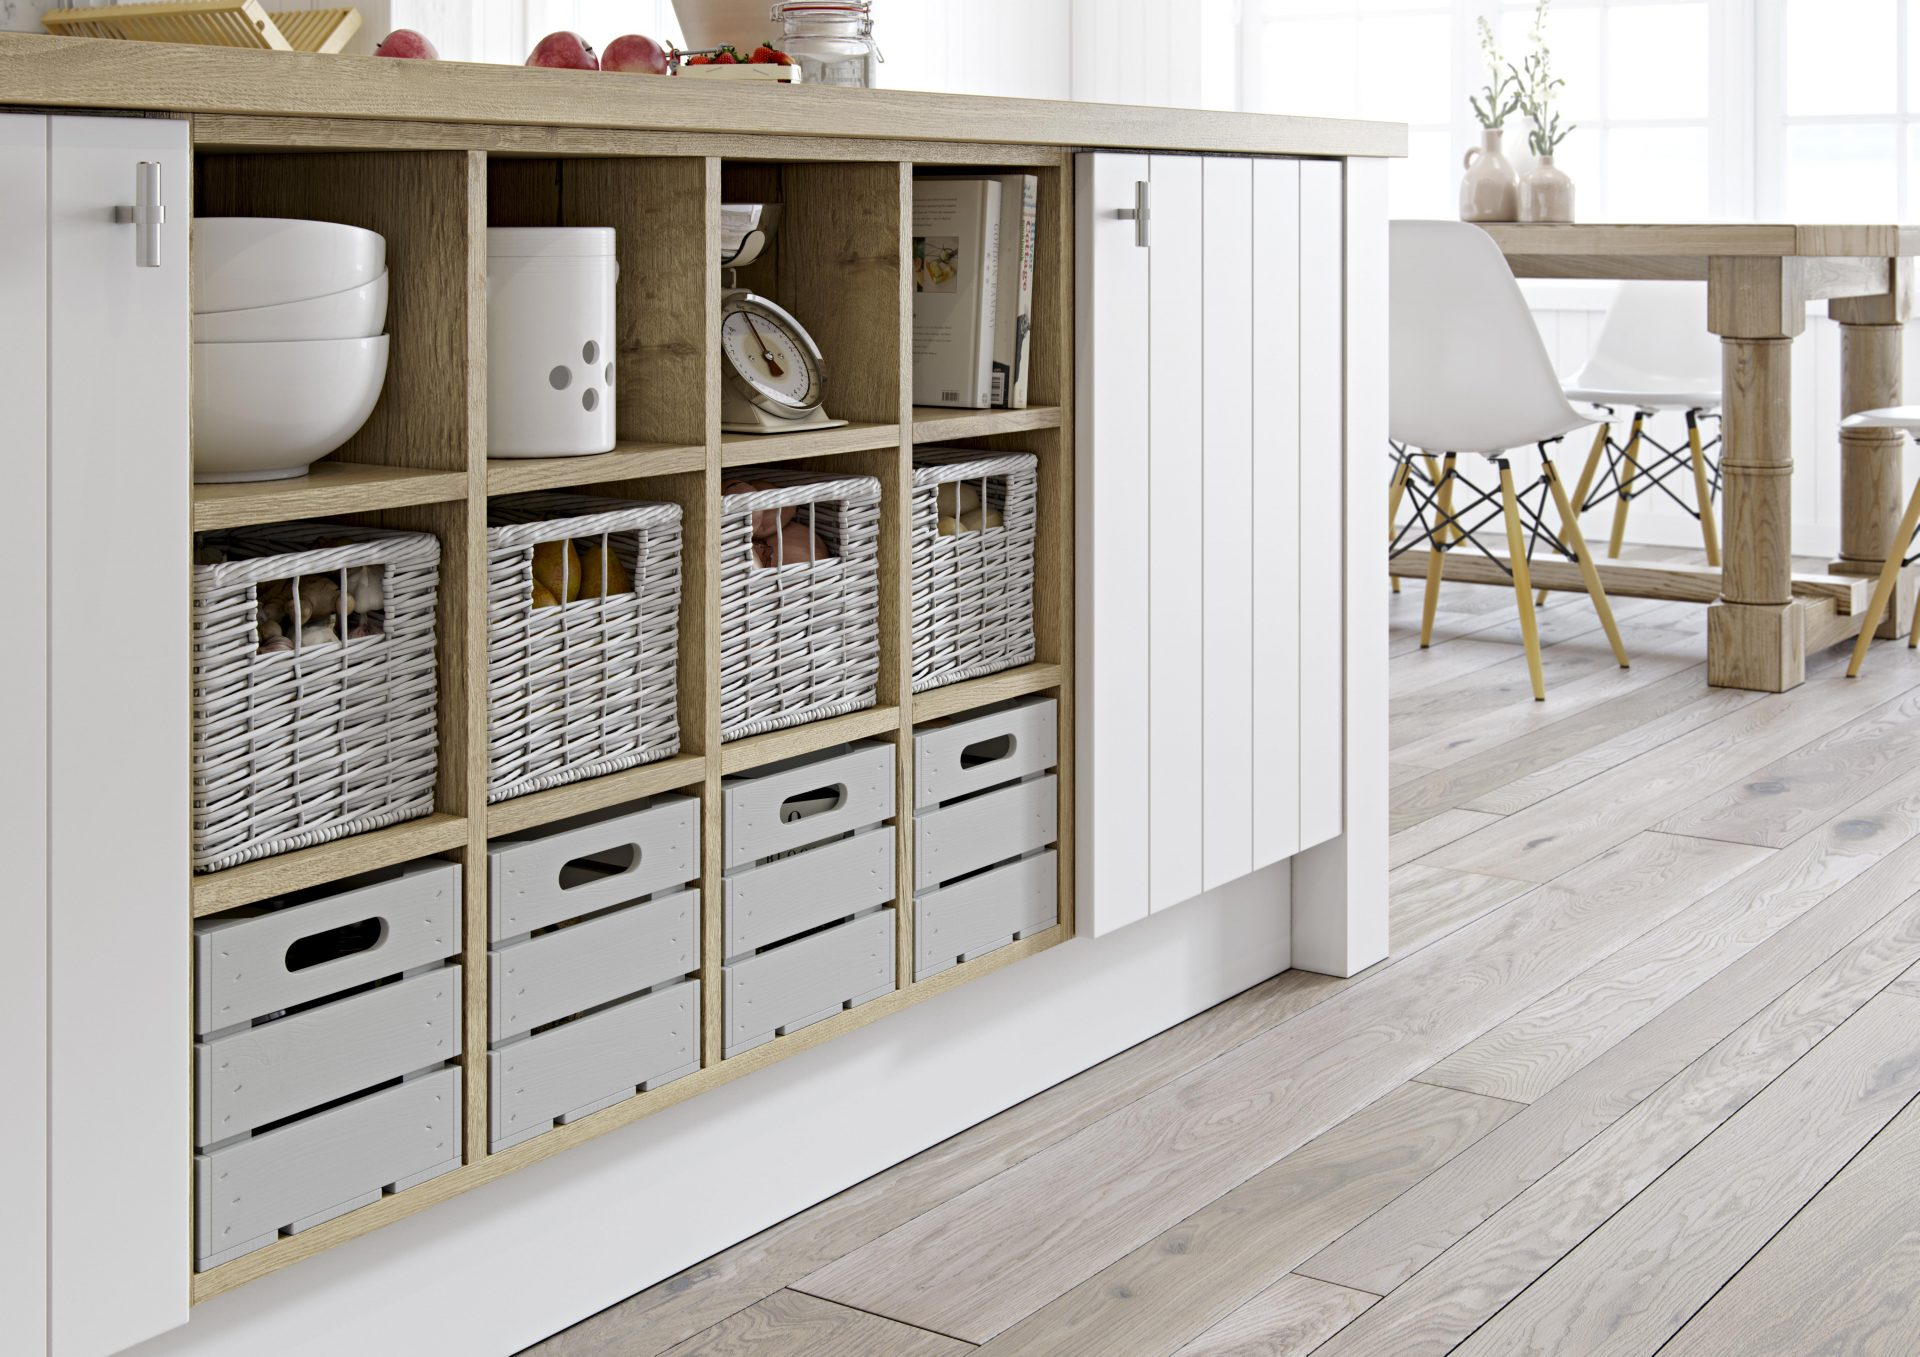 Feature Open Display Base with a Choice of Storage Inserts